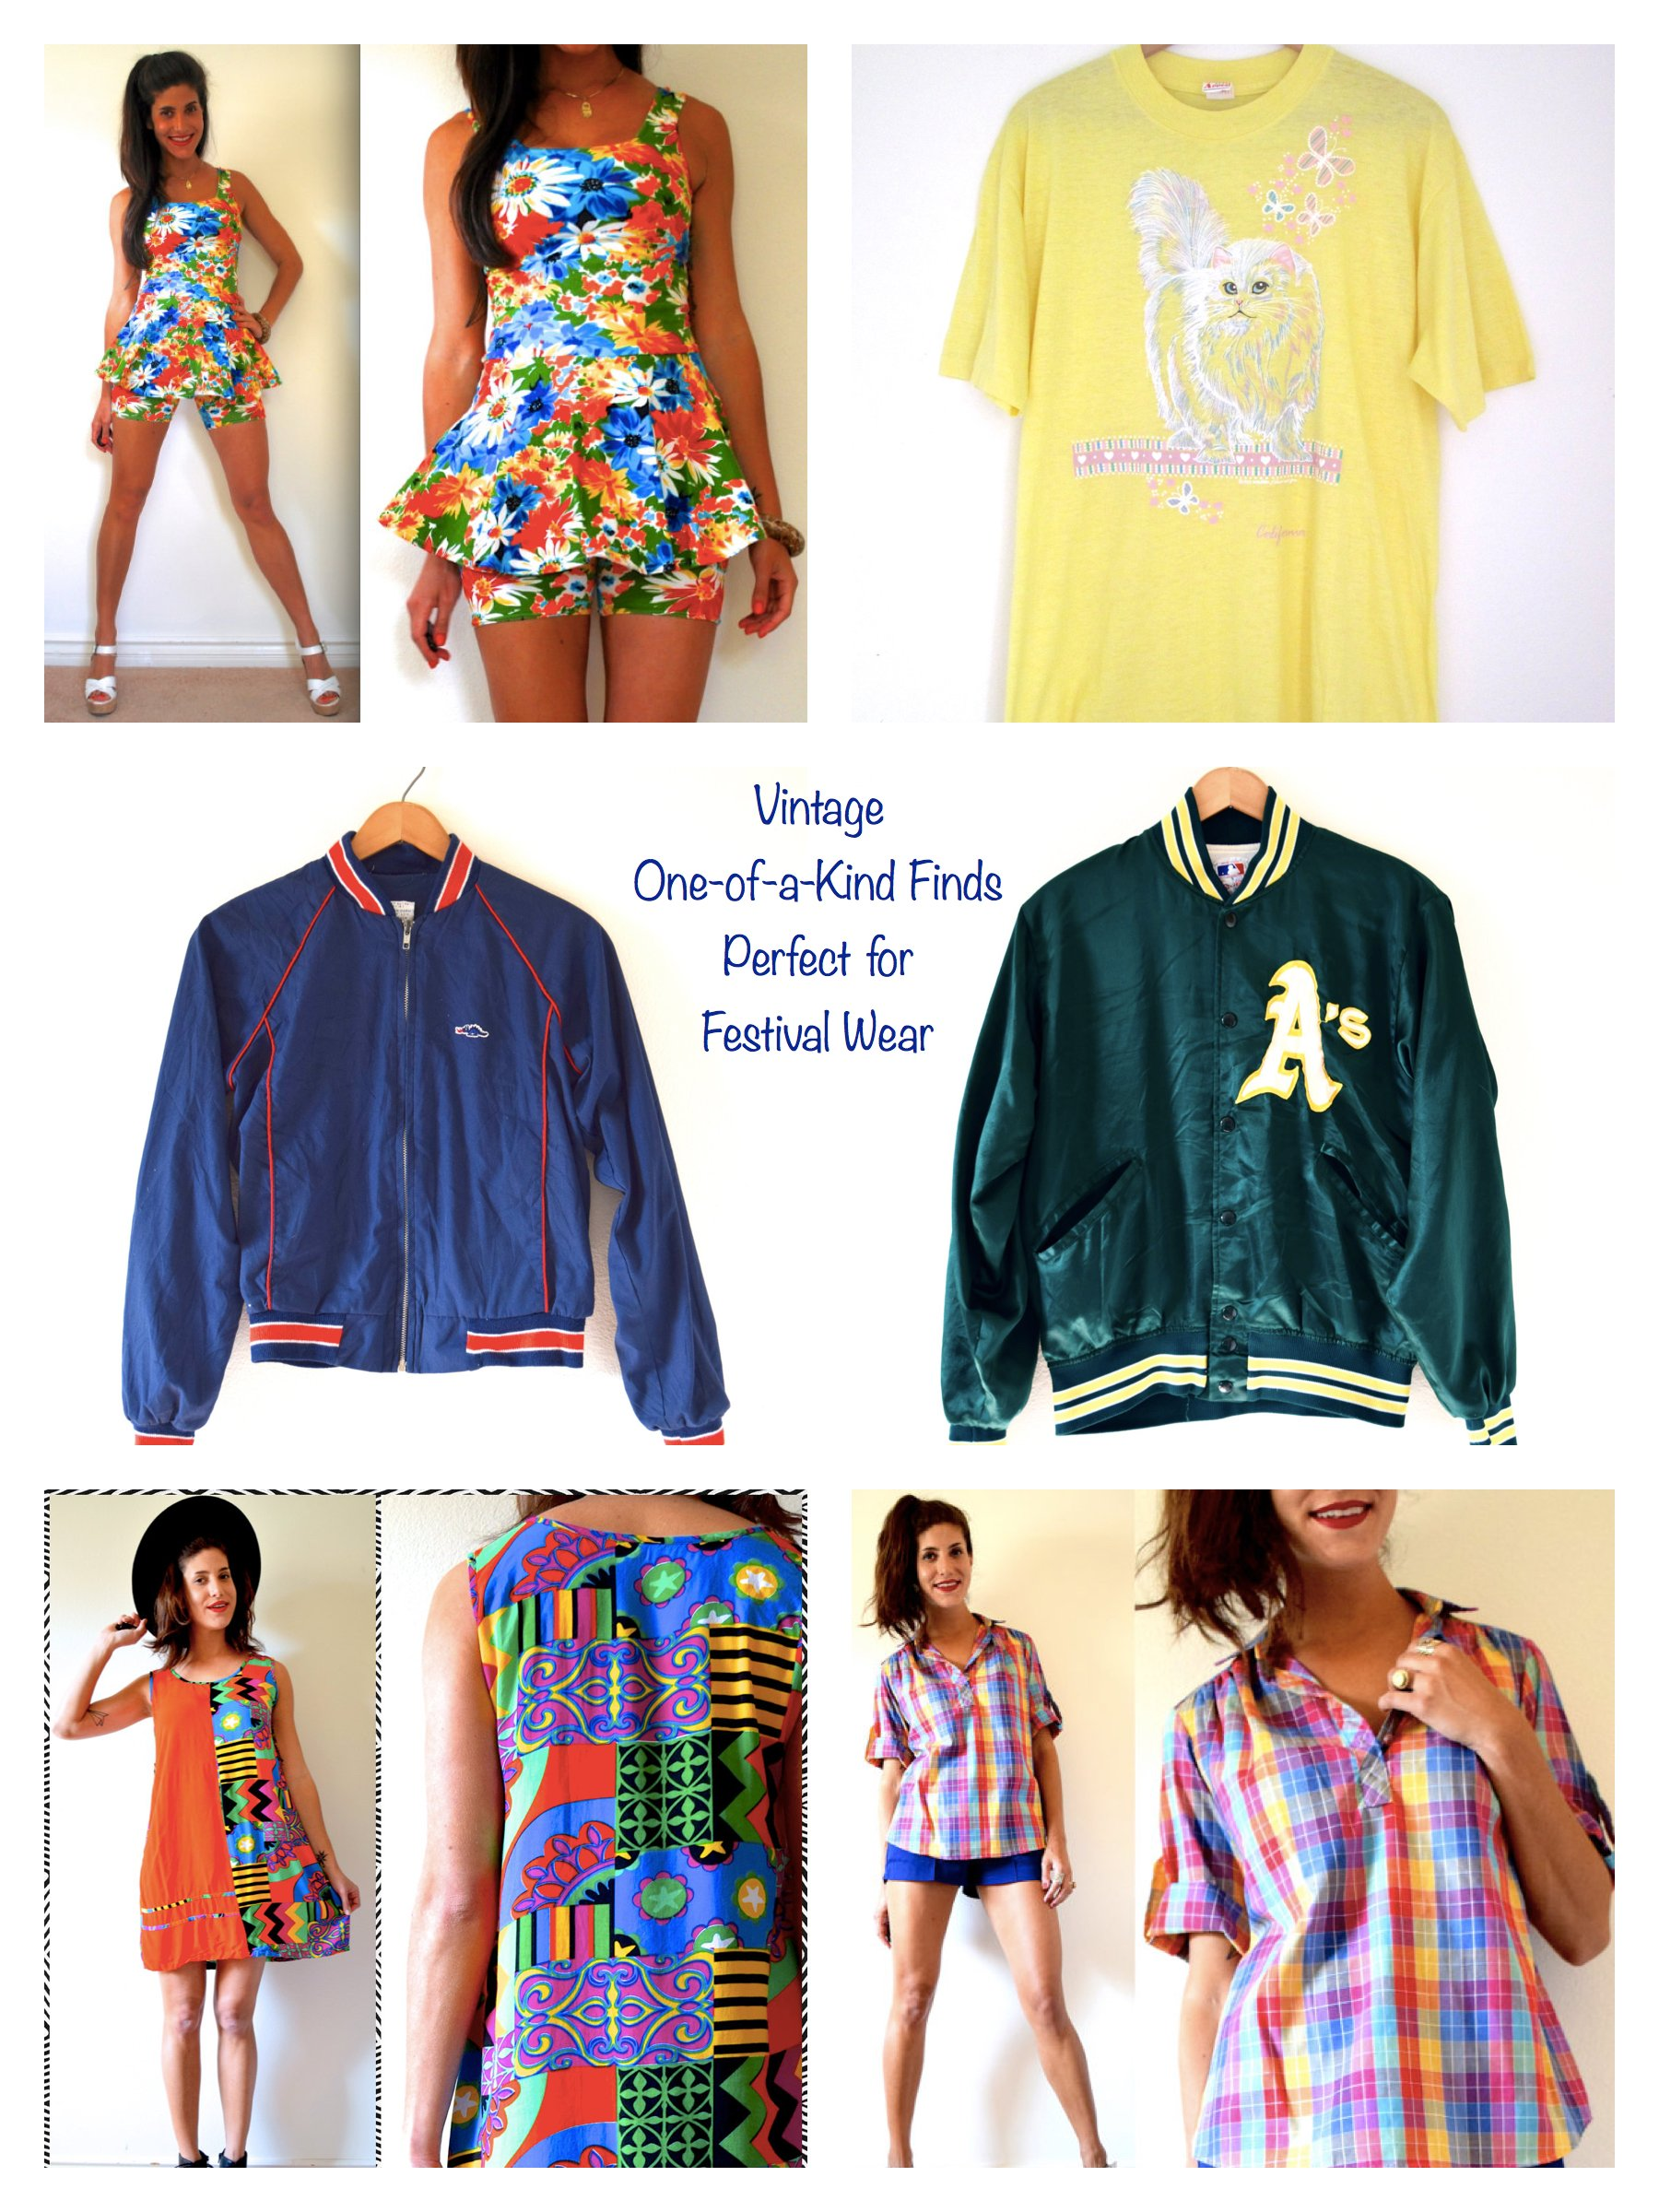 Vintage One-of-a-Kind Finds Perfect for Festival Wear